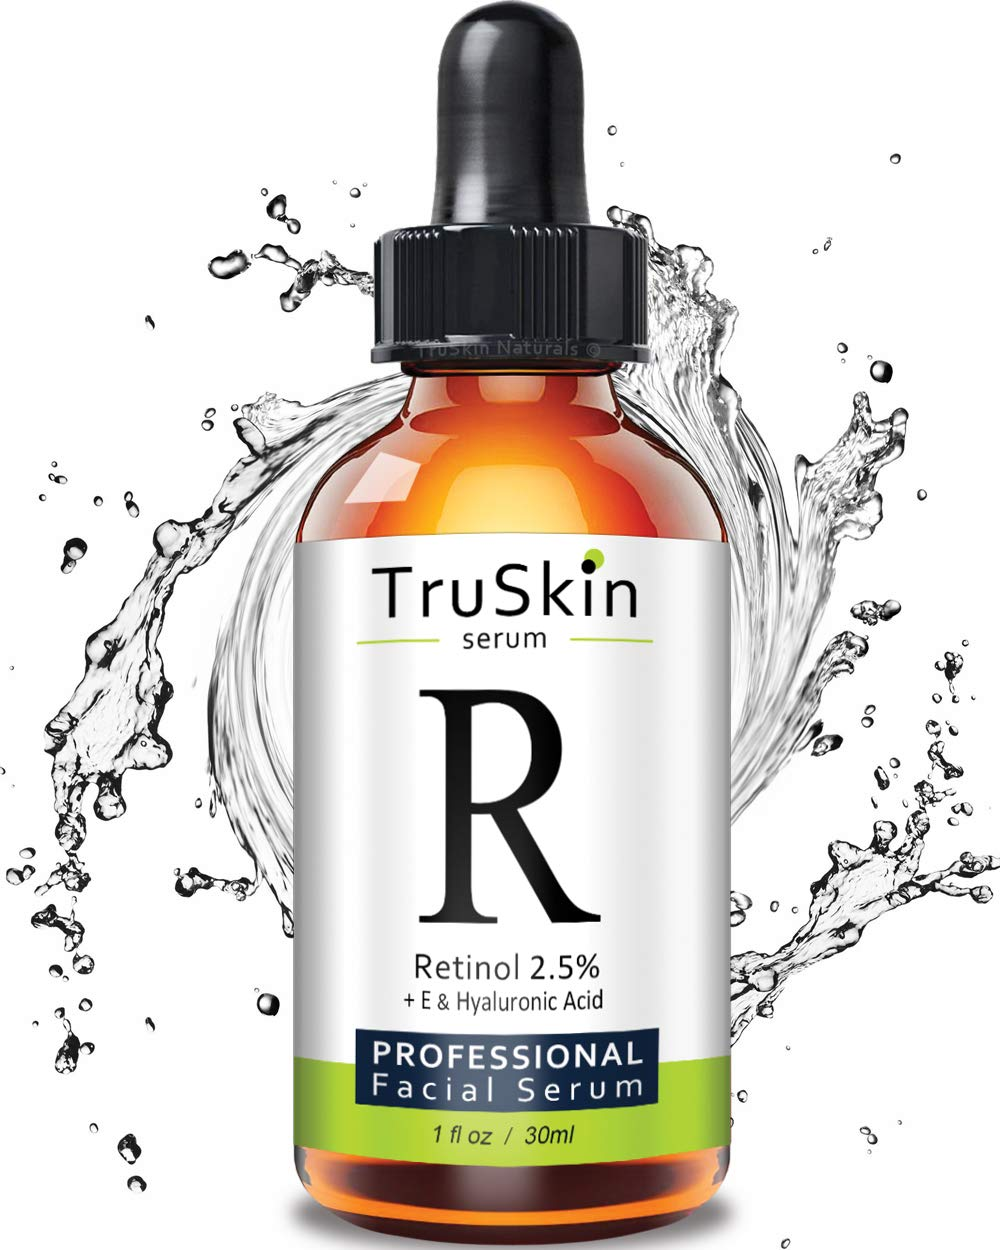 TruSkin RETINOL Serum for Wrinkles, Fine Lines, contains Vitamin A, E and Hyaluronic Acid, Organic Green Tea, Jojoba Oil, BEST Anti Wrinkle Facial Serum,1oz by TruSkin Naturals